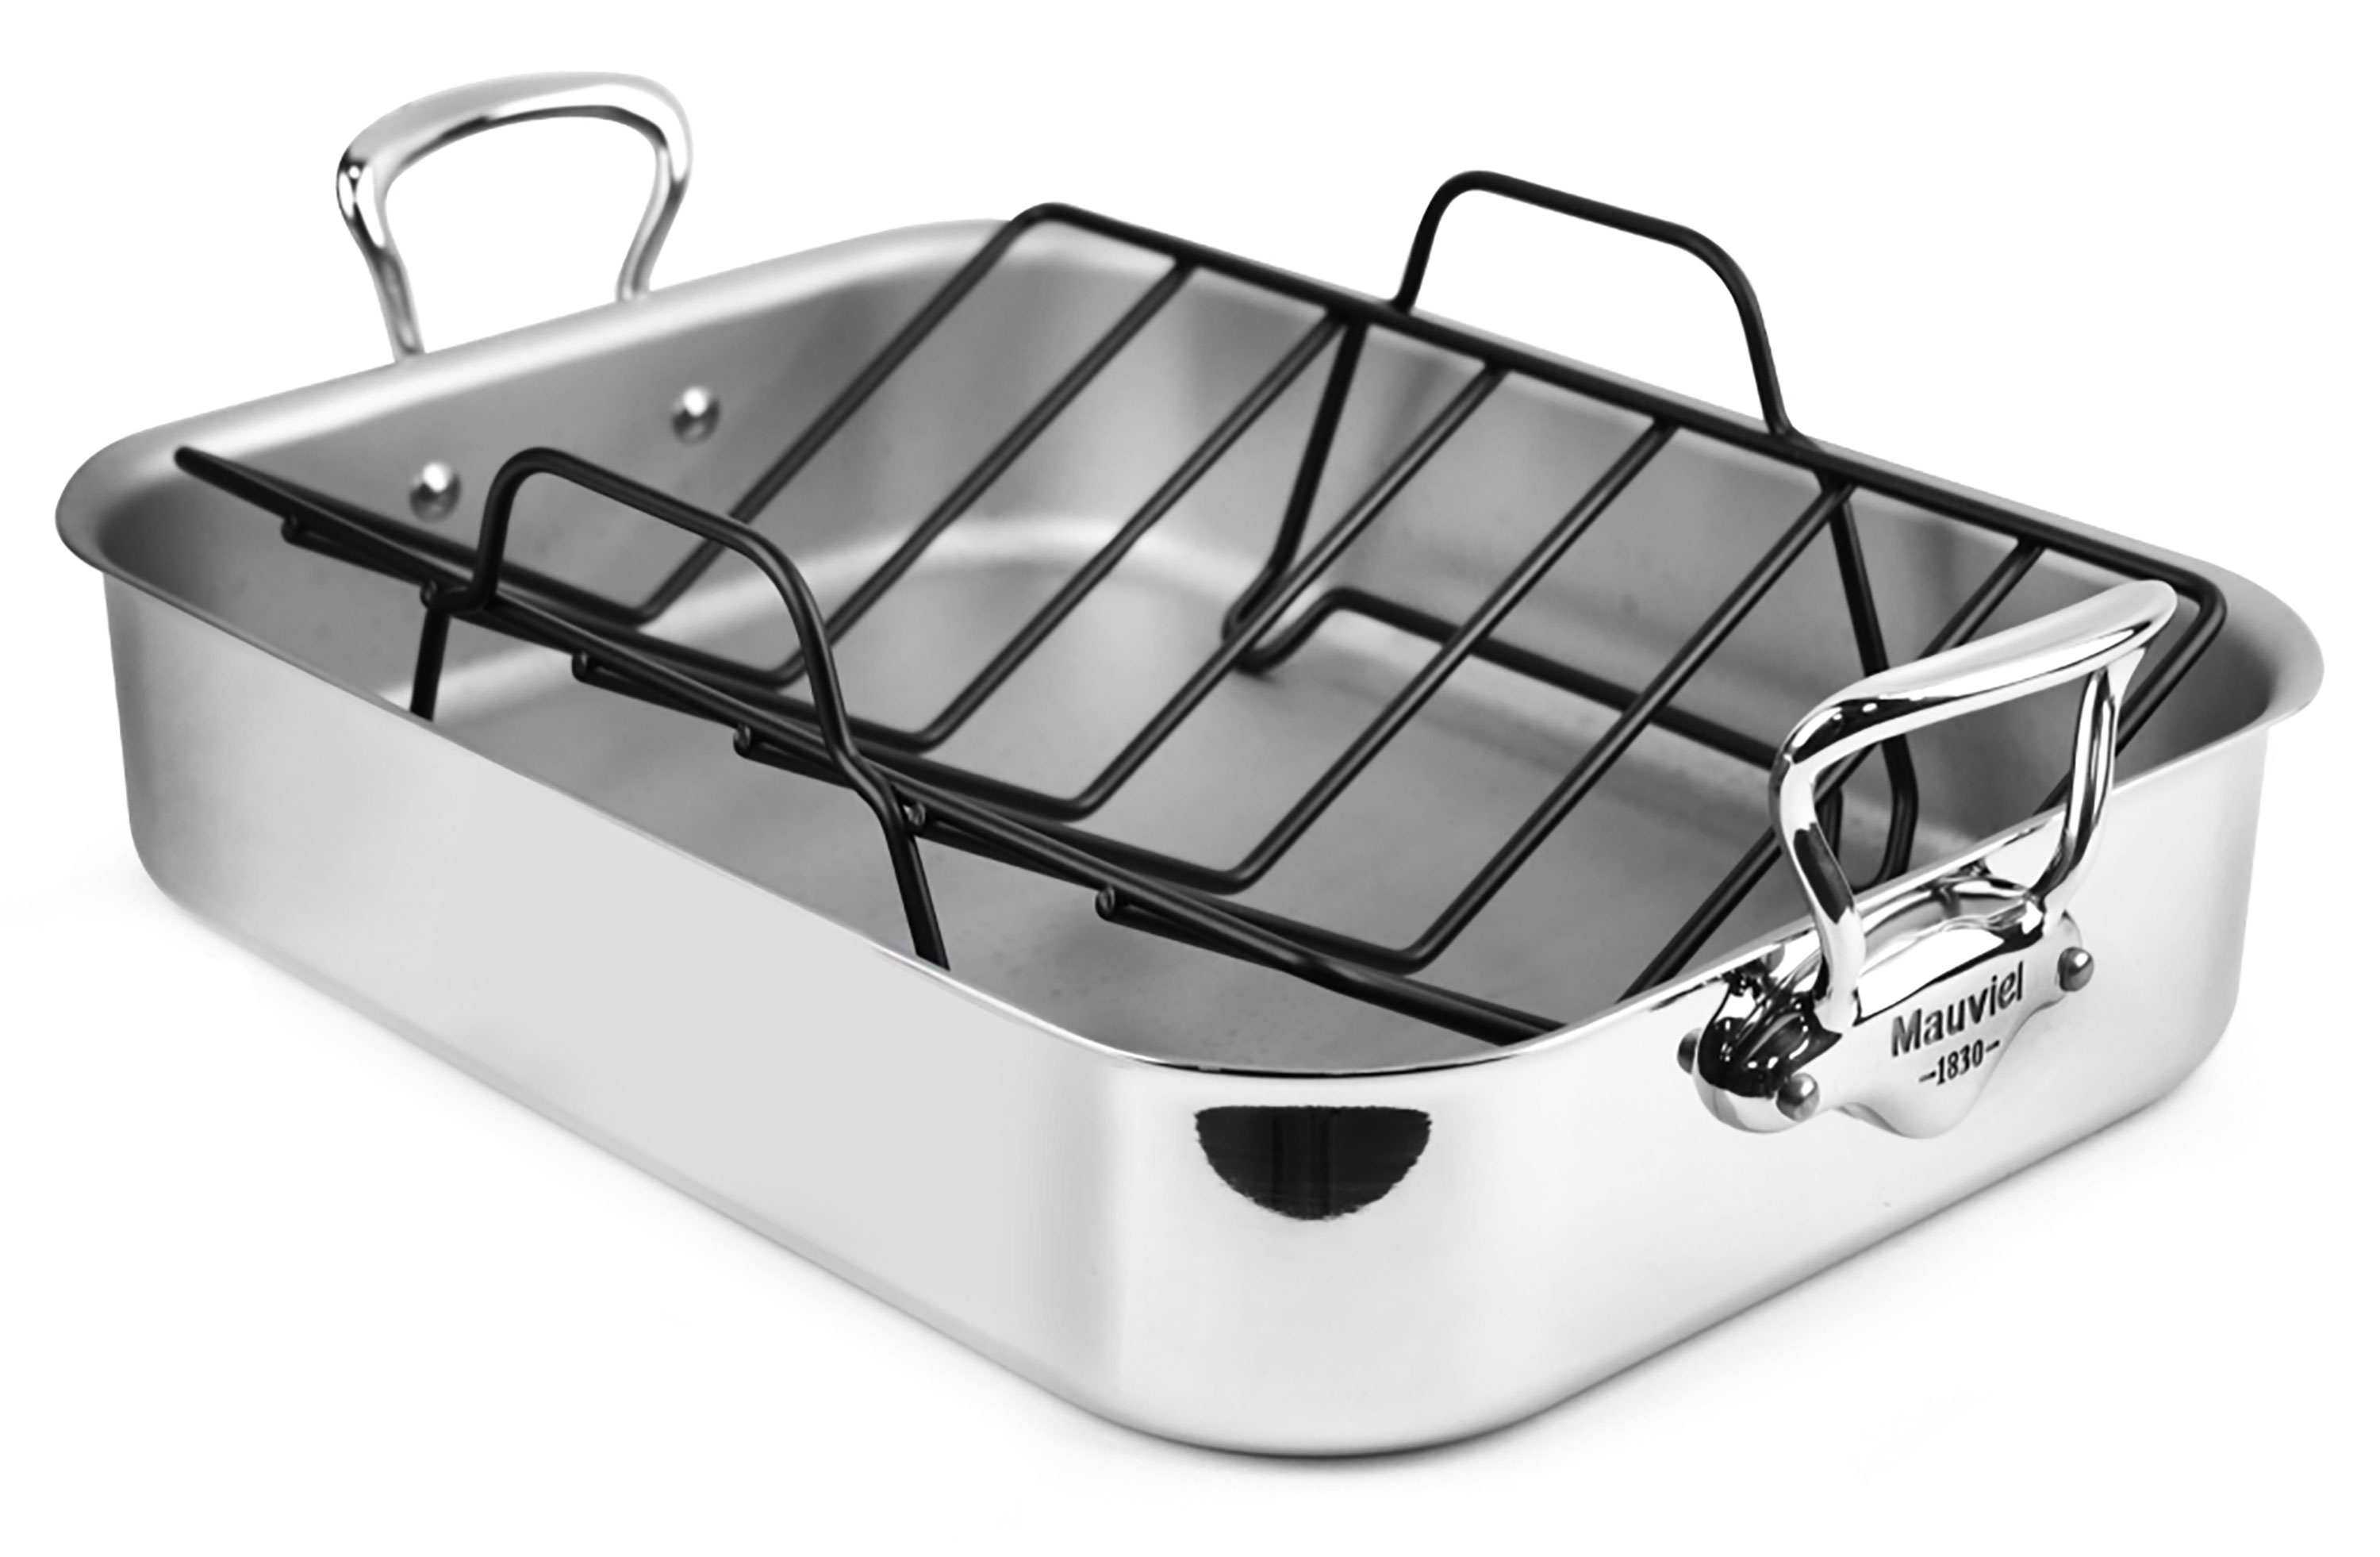 mauviel m cook stainless steel 16x12 roasting pan with rack